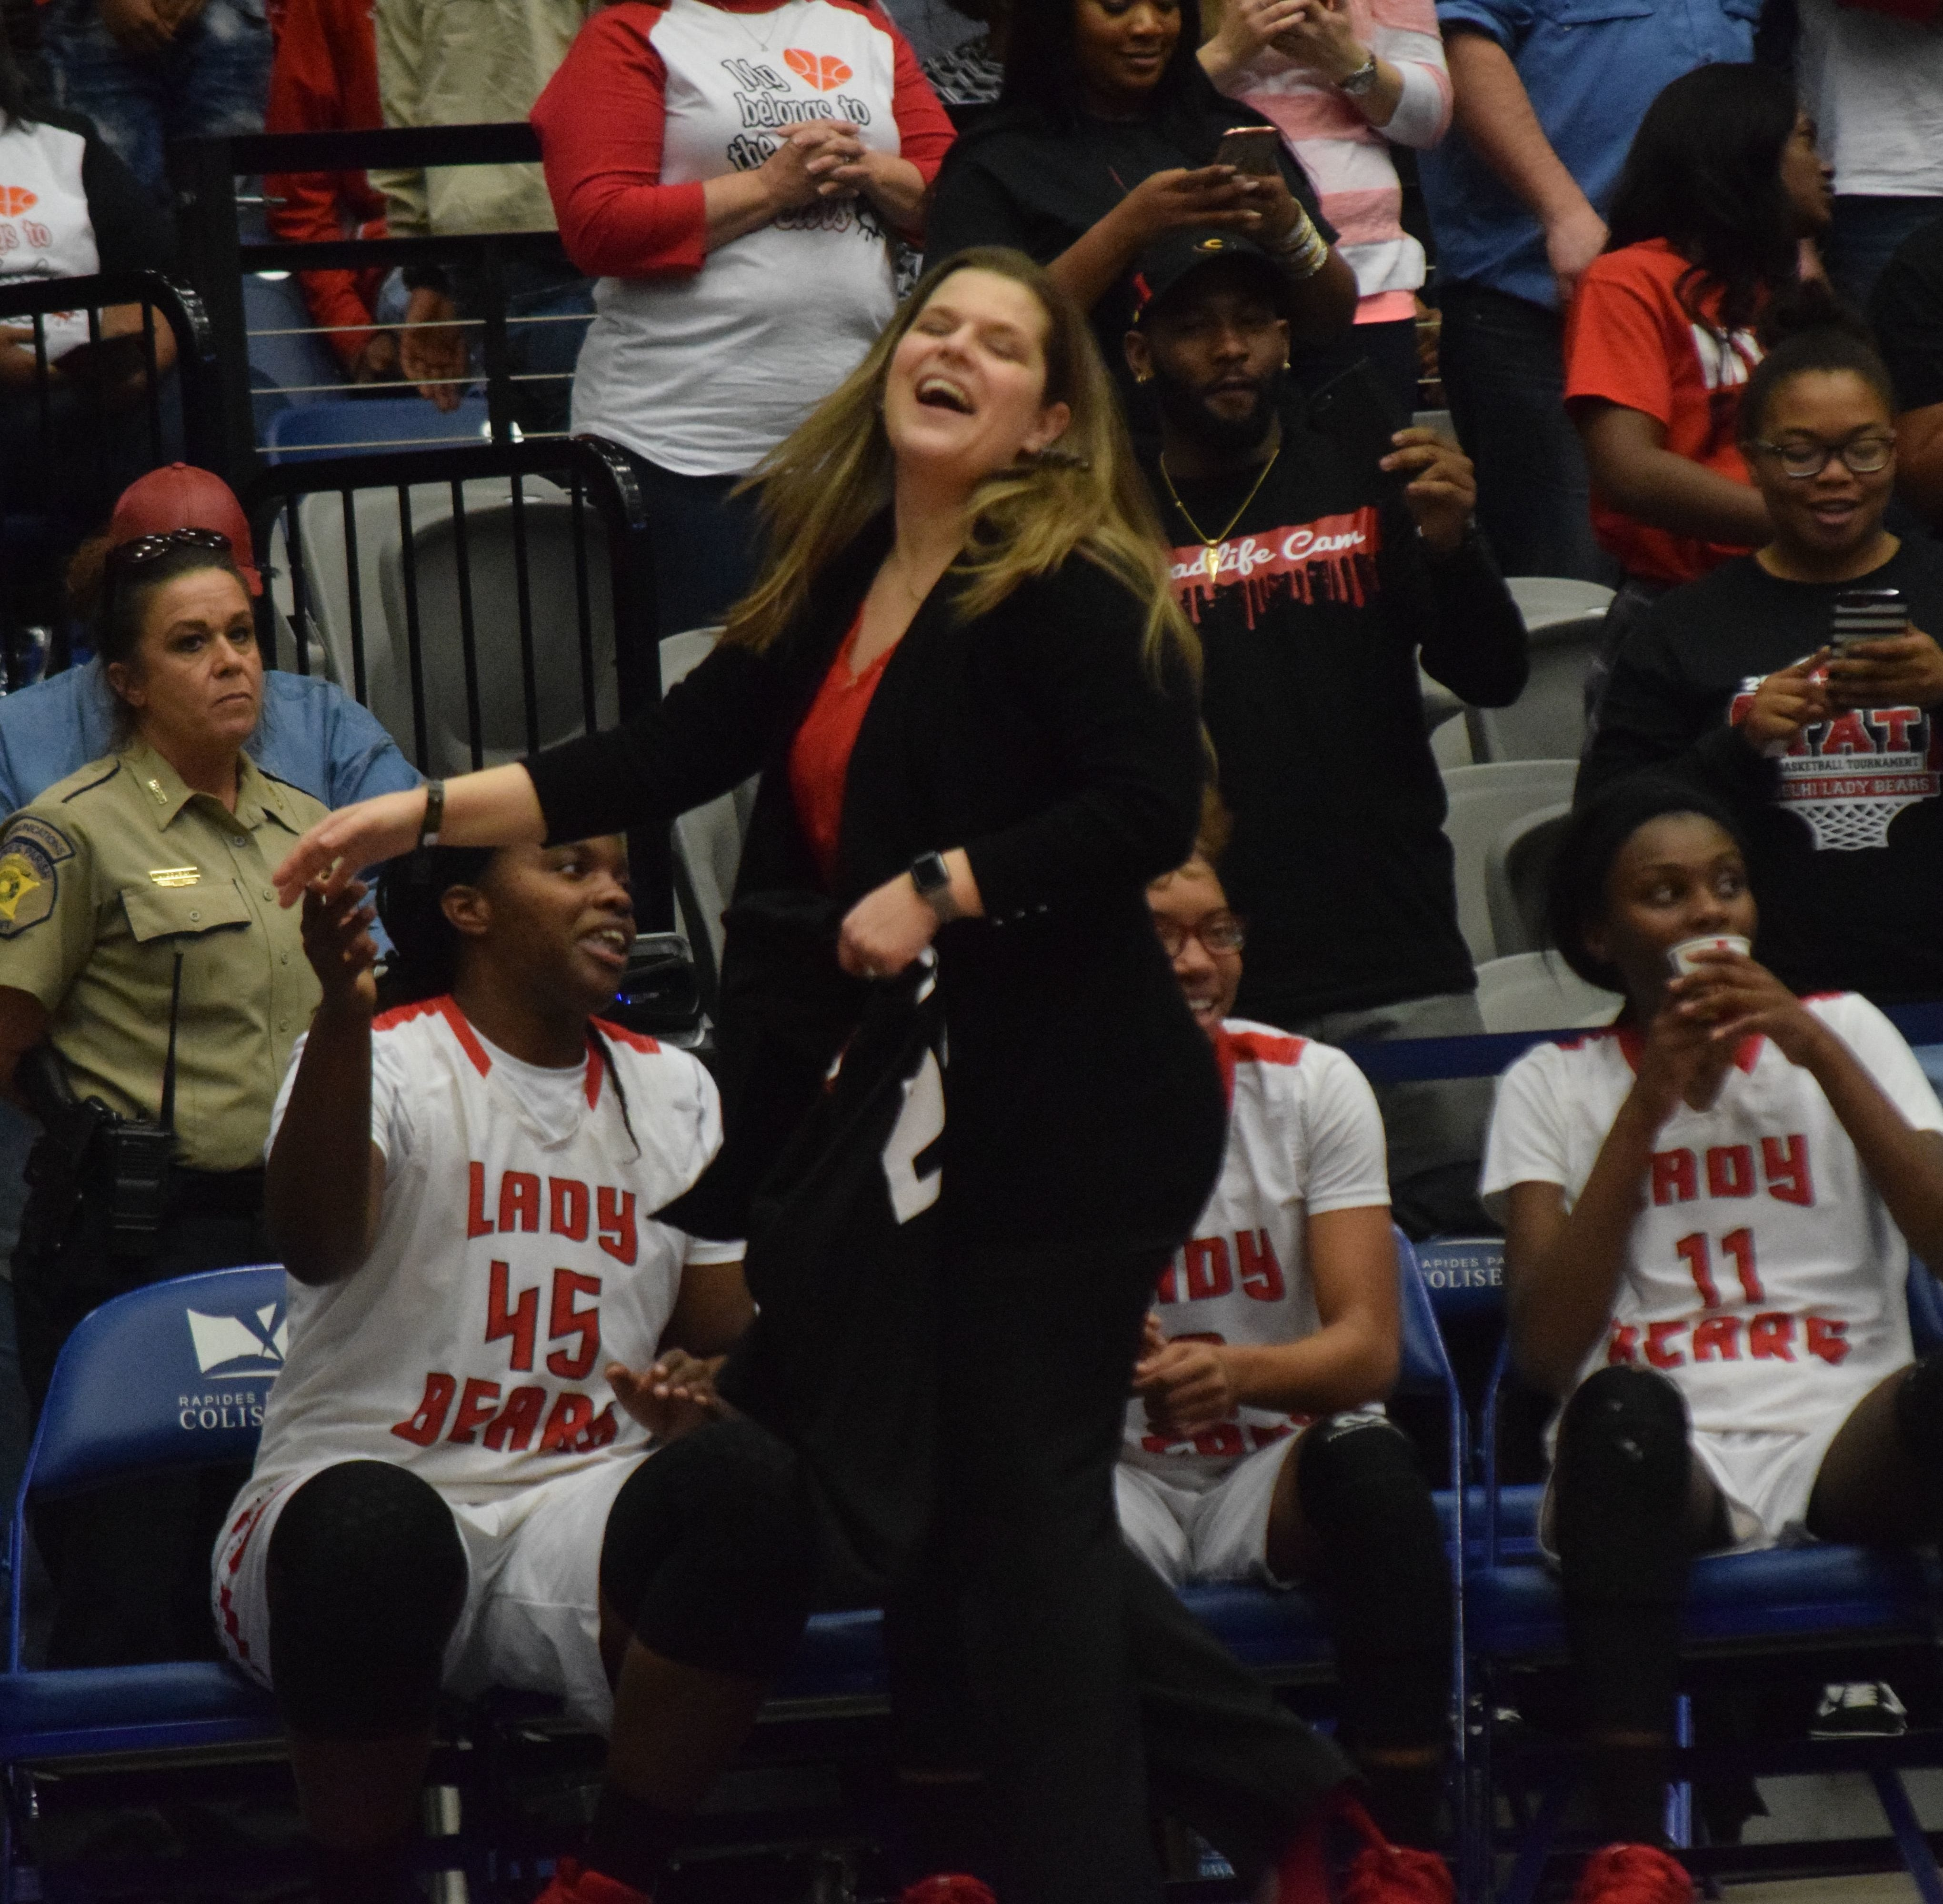 One year ago, Emily Anderson led Delhi to its first state championship in 55 years. The Lady Bears will defend that title at next week's LHSAA state tournament in Alexandria's Rapides Coliseum.